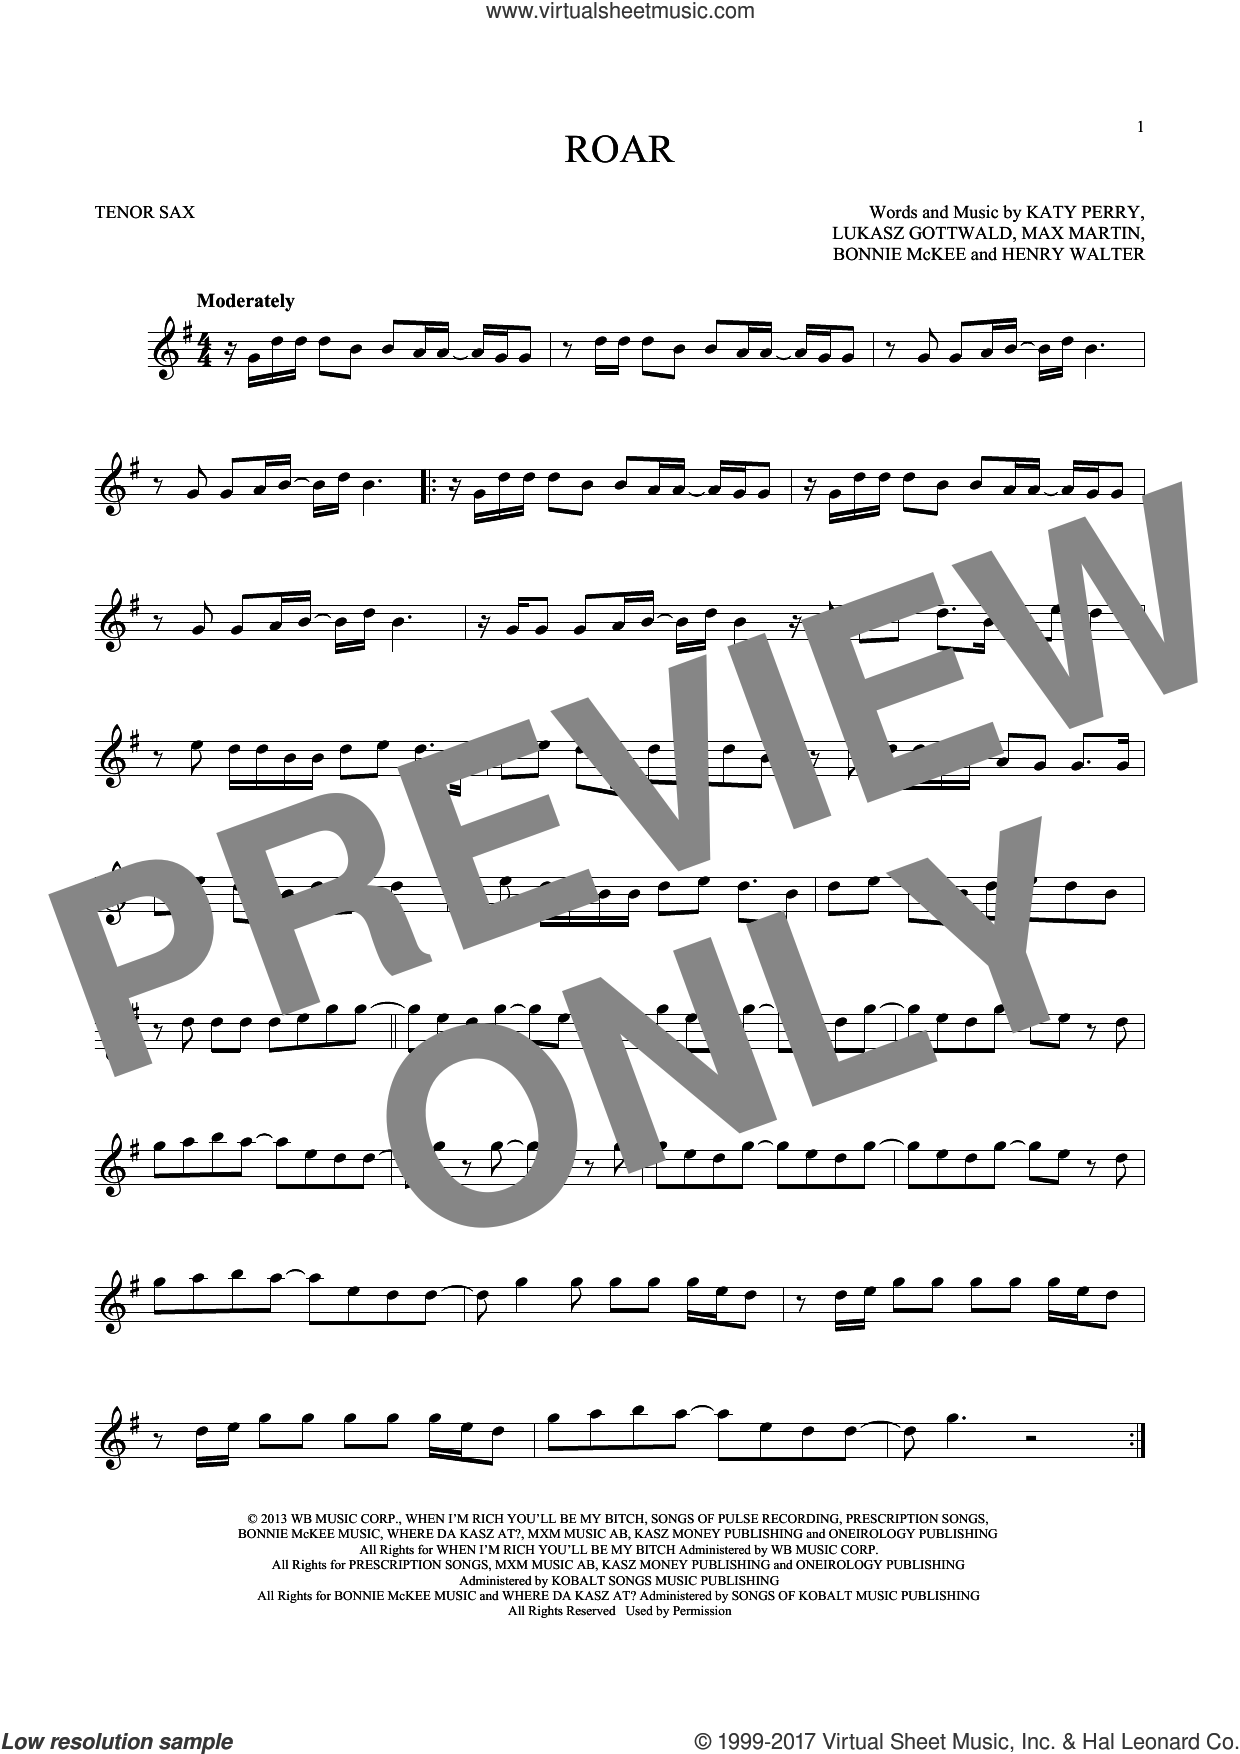 Roar sheet music for tenor saxophone solo by Katy Perry, Bonnie McKee, Henry Walter, Lukasz Gottwald and Max Martin, intermediate skill level